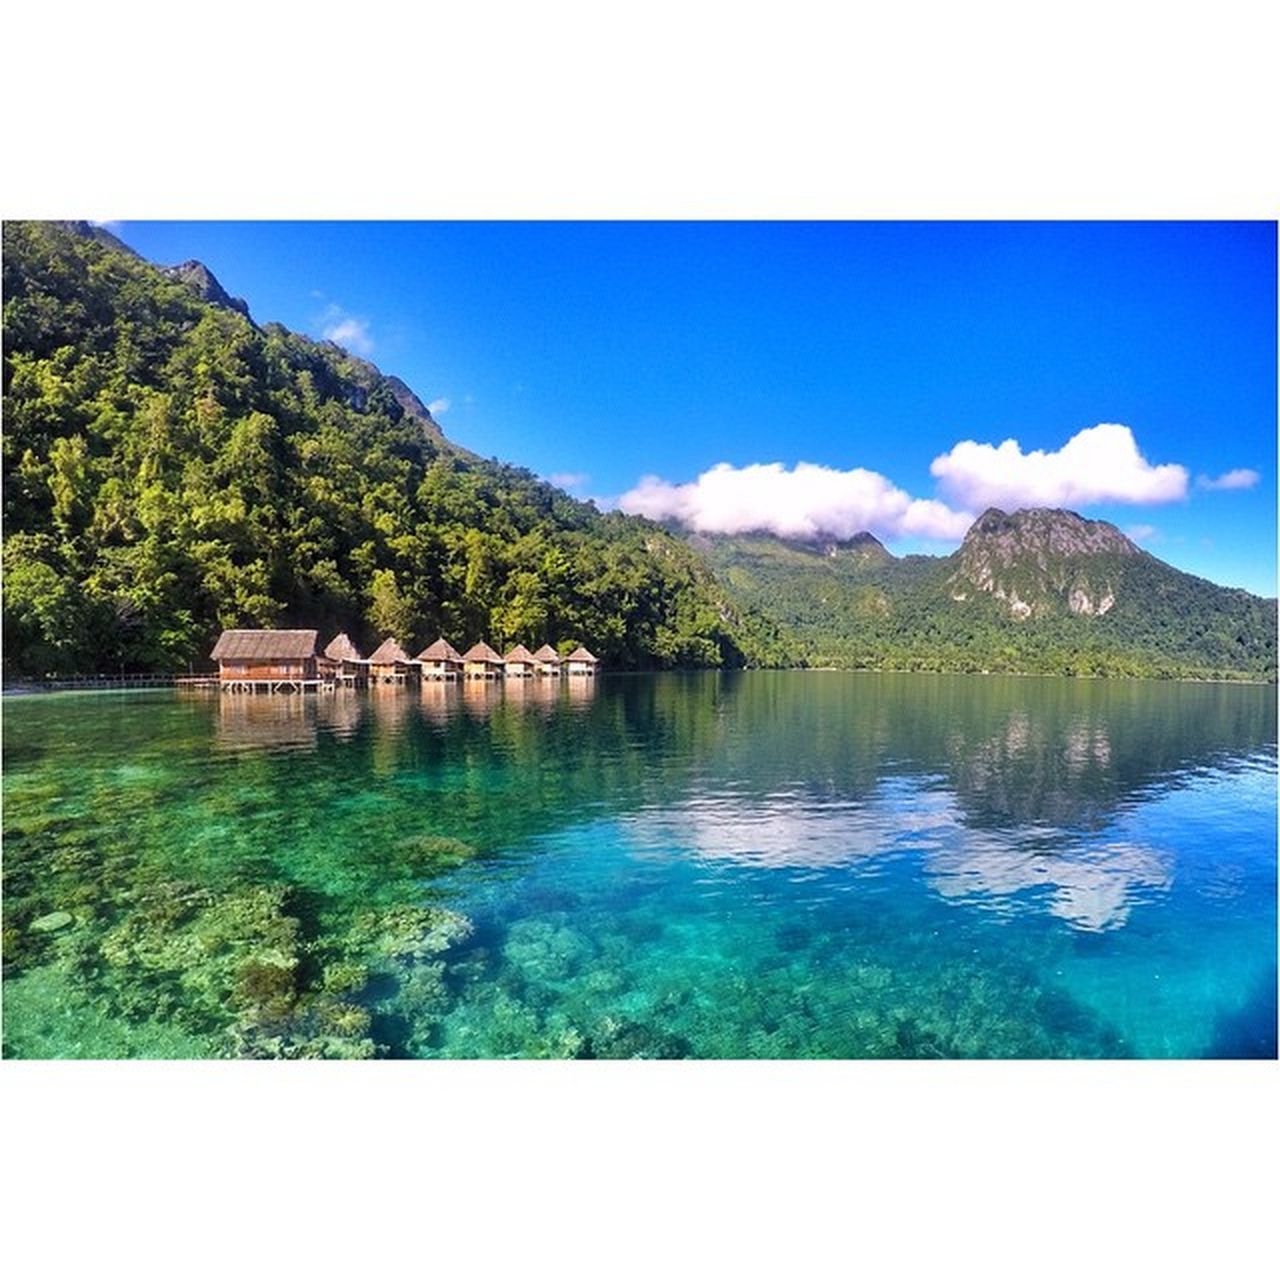 Ora Eco Resort, Ora Beach in North Seram Island, Maluku - Indonesia. Bestplaces Exoticplaces Bestvacations Explorepedia Exploreindonesia Exploreambon IndonesiaKaya Indonesiajuara Indonesianrepost Lingkarindonesia Wonderfulindonesia Amazingindonesia Picoftheday Photooftheday Jelajahparadise